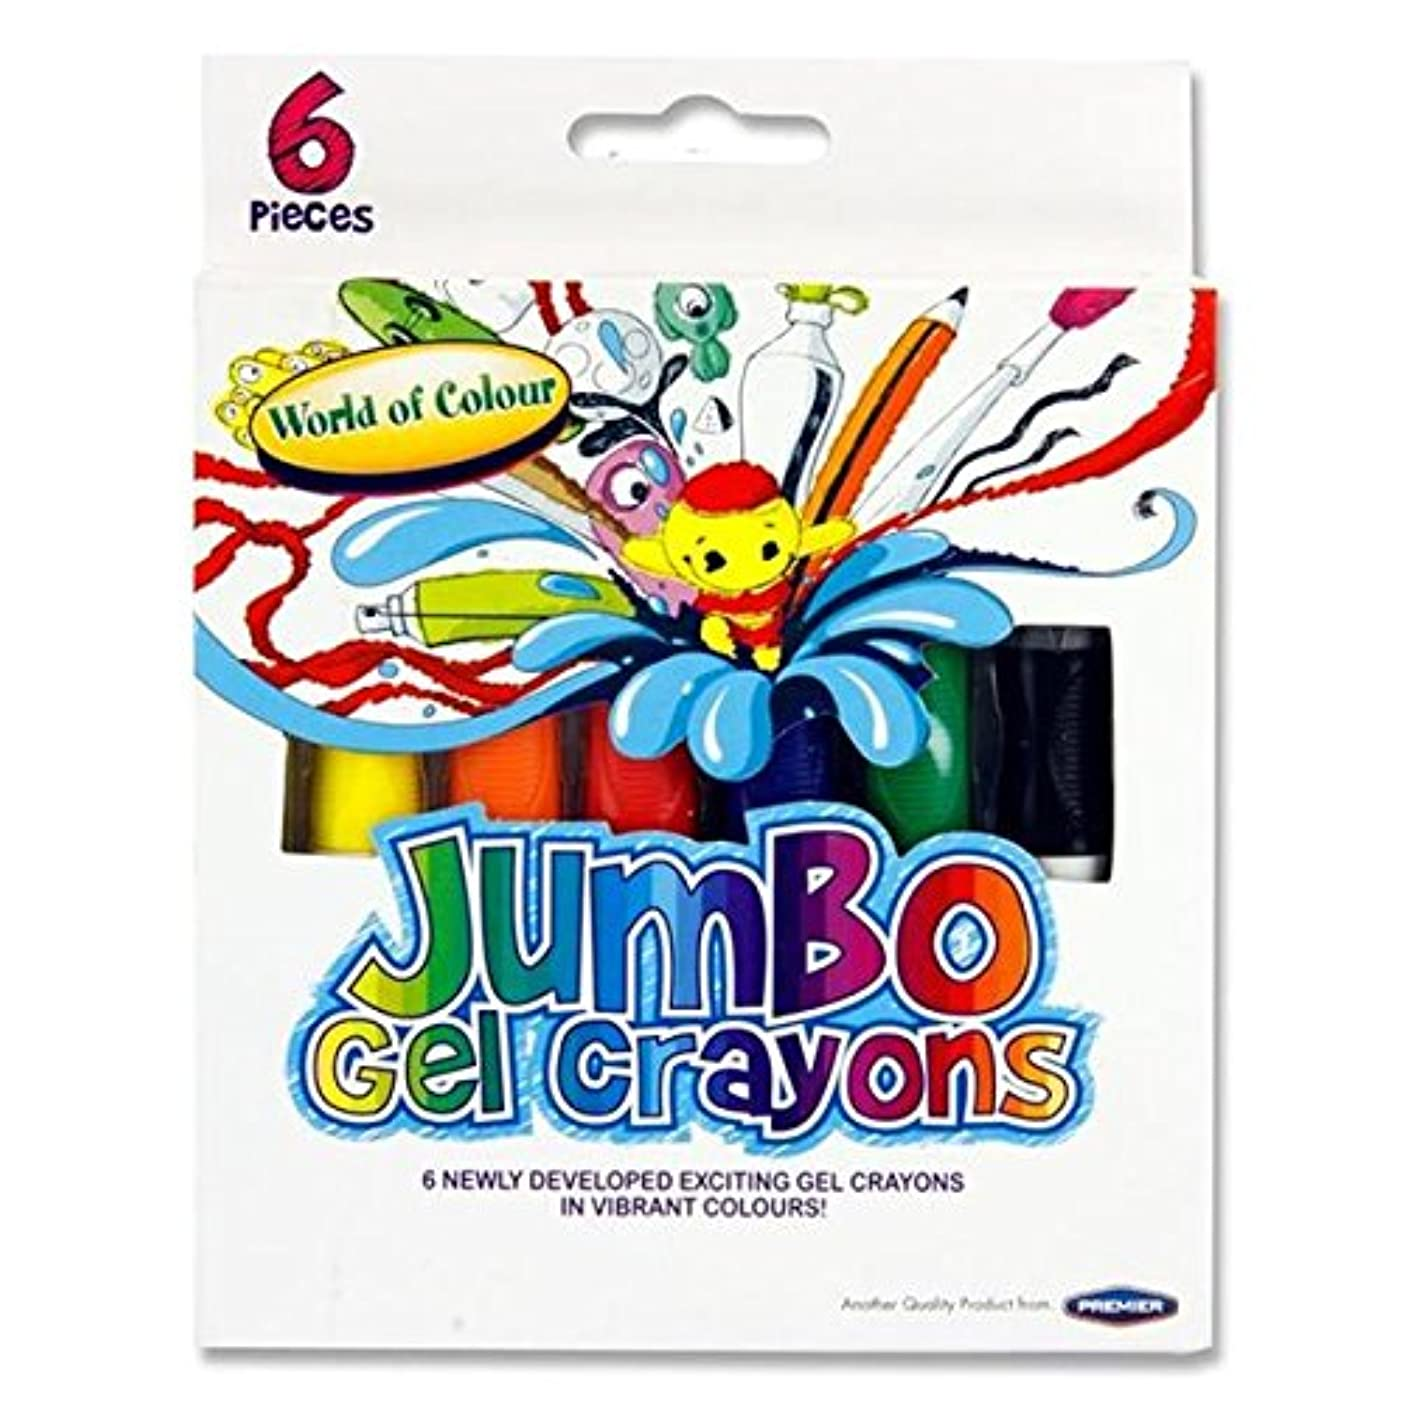 Premier Stationery 79681 World of Colour Jumbo Gel Crayon - Multi-Colour (Pack of 6)